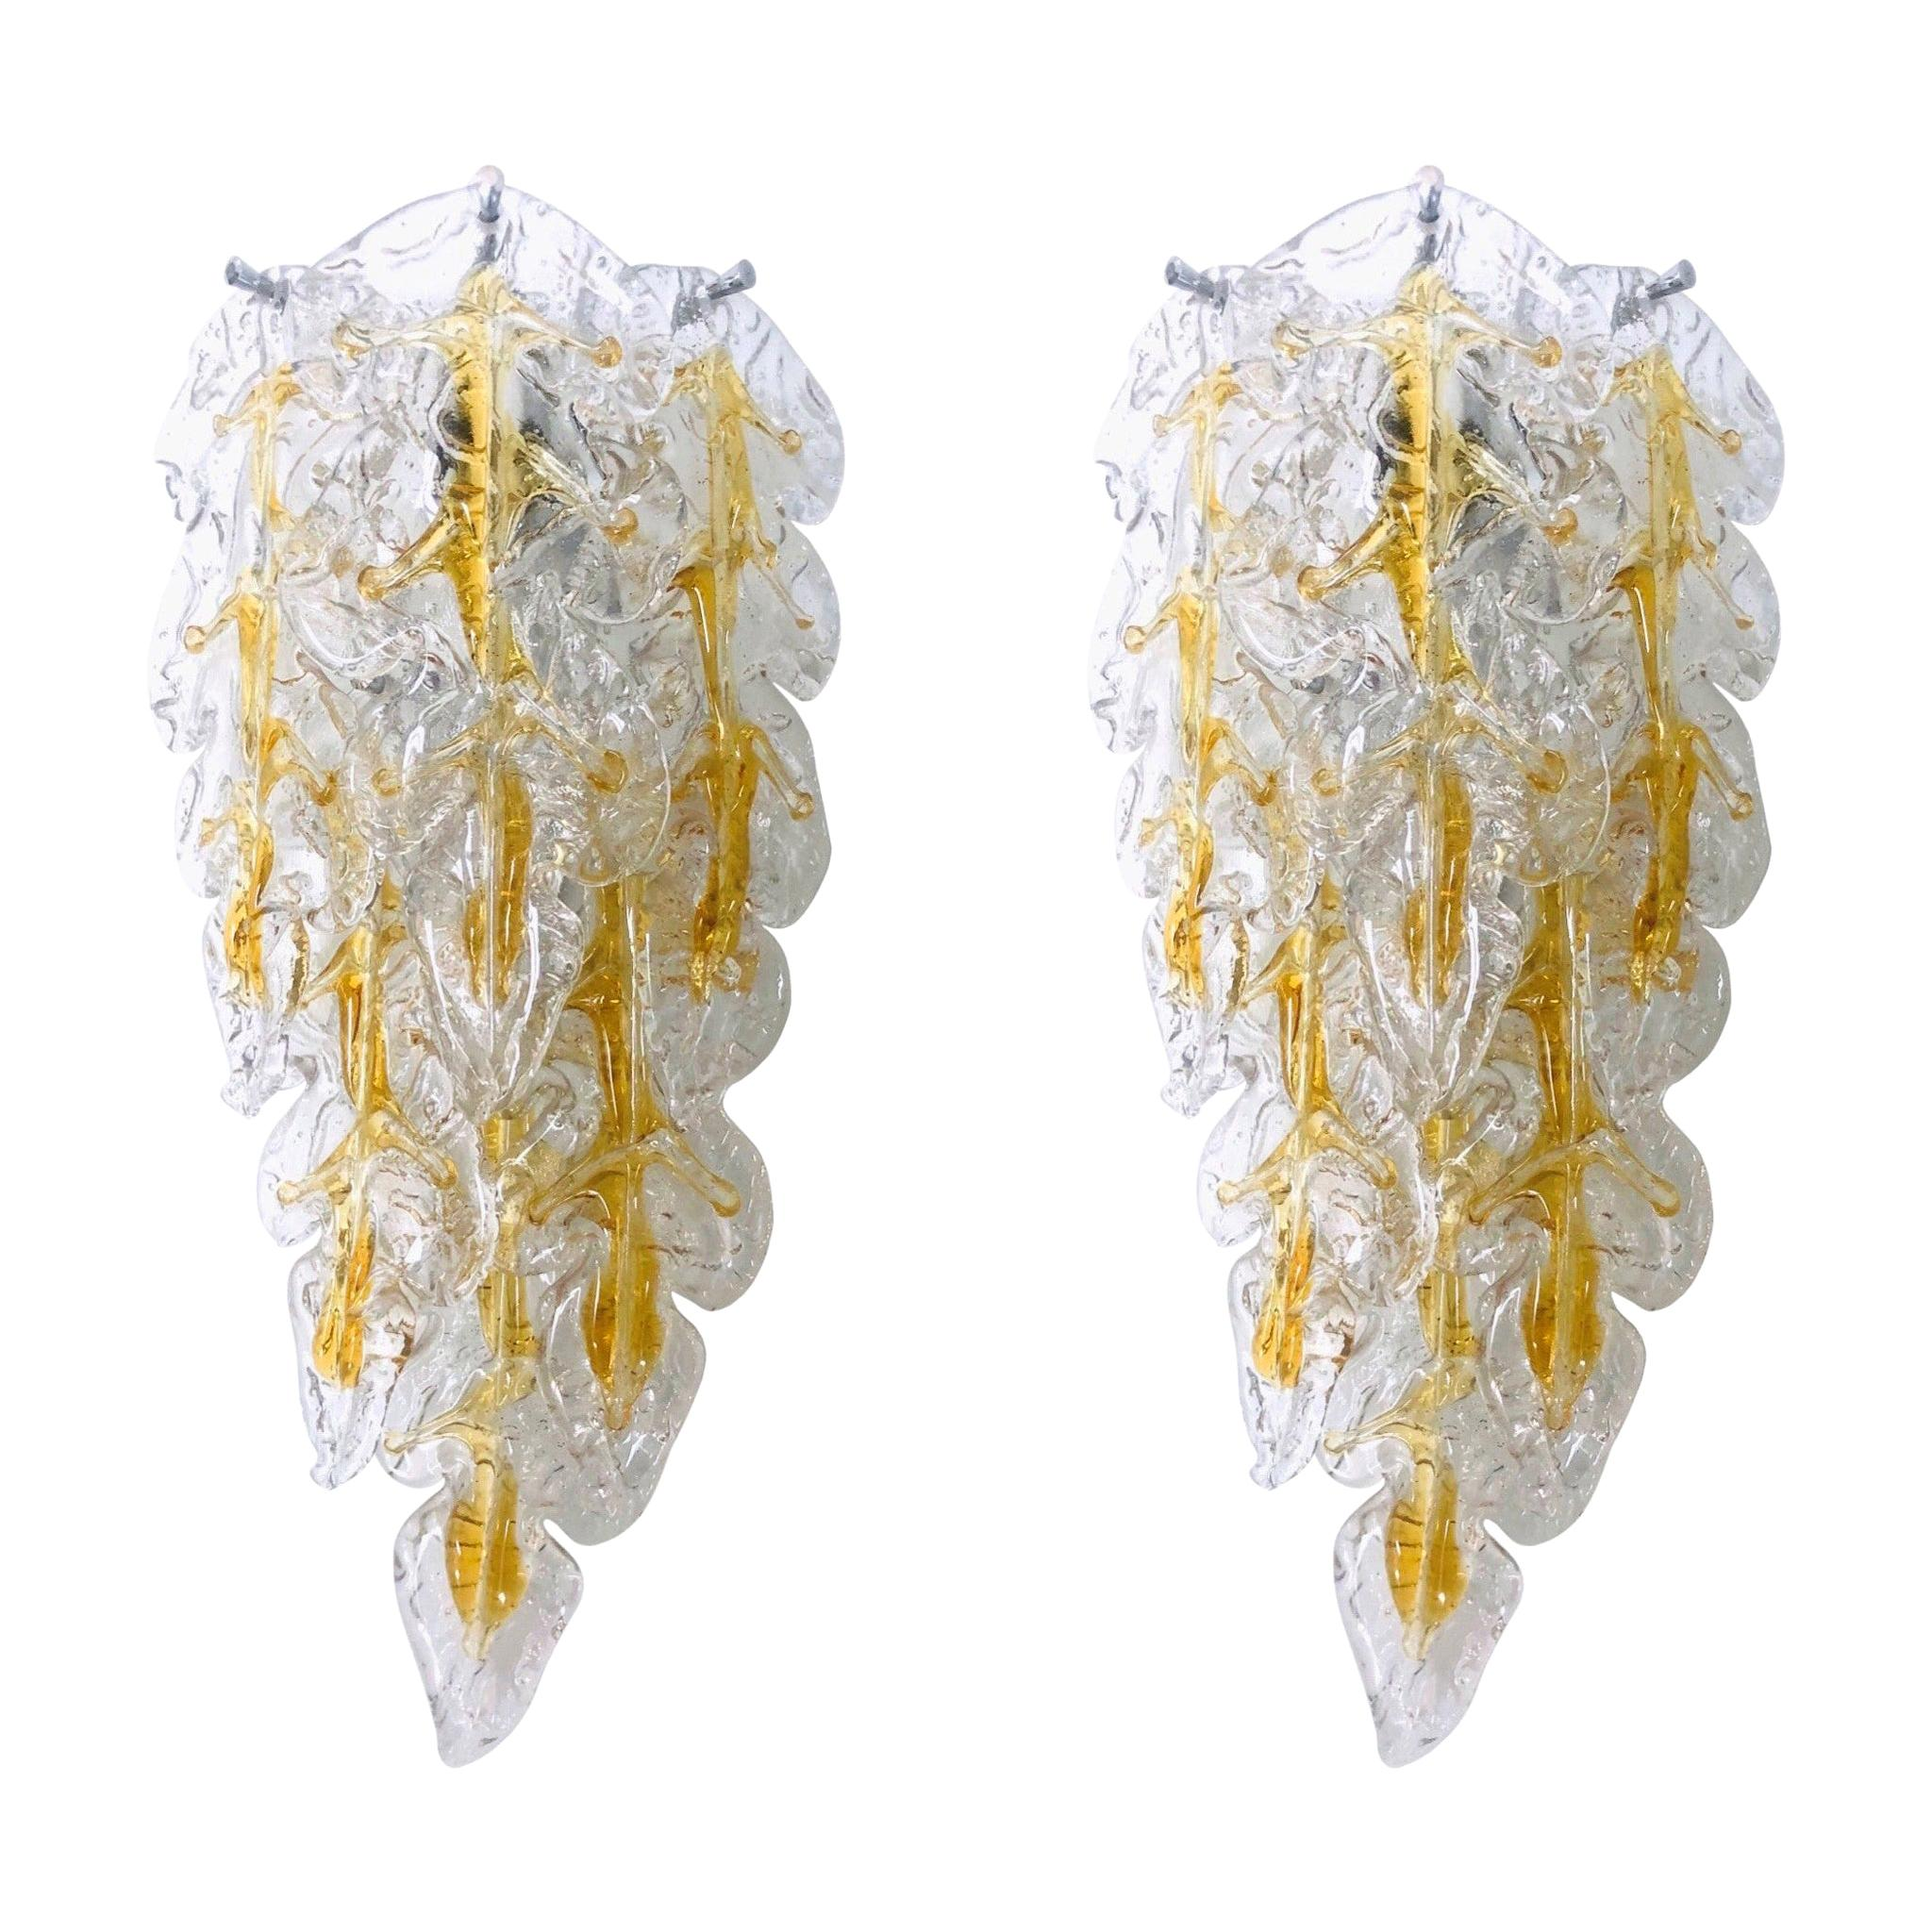 Italian Midcentury Pair of Murano Leaf Glass Wall Sconces by Mazzega, 1970s